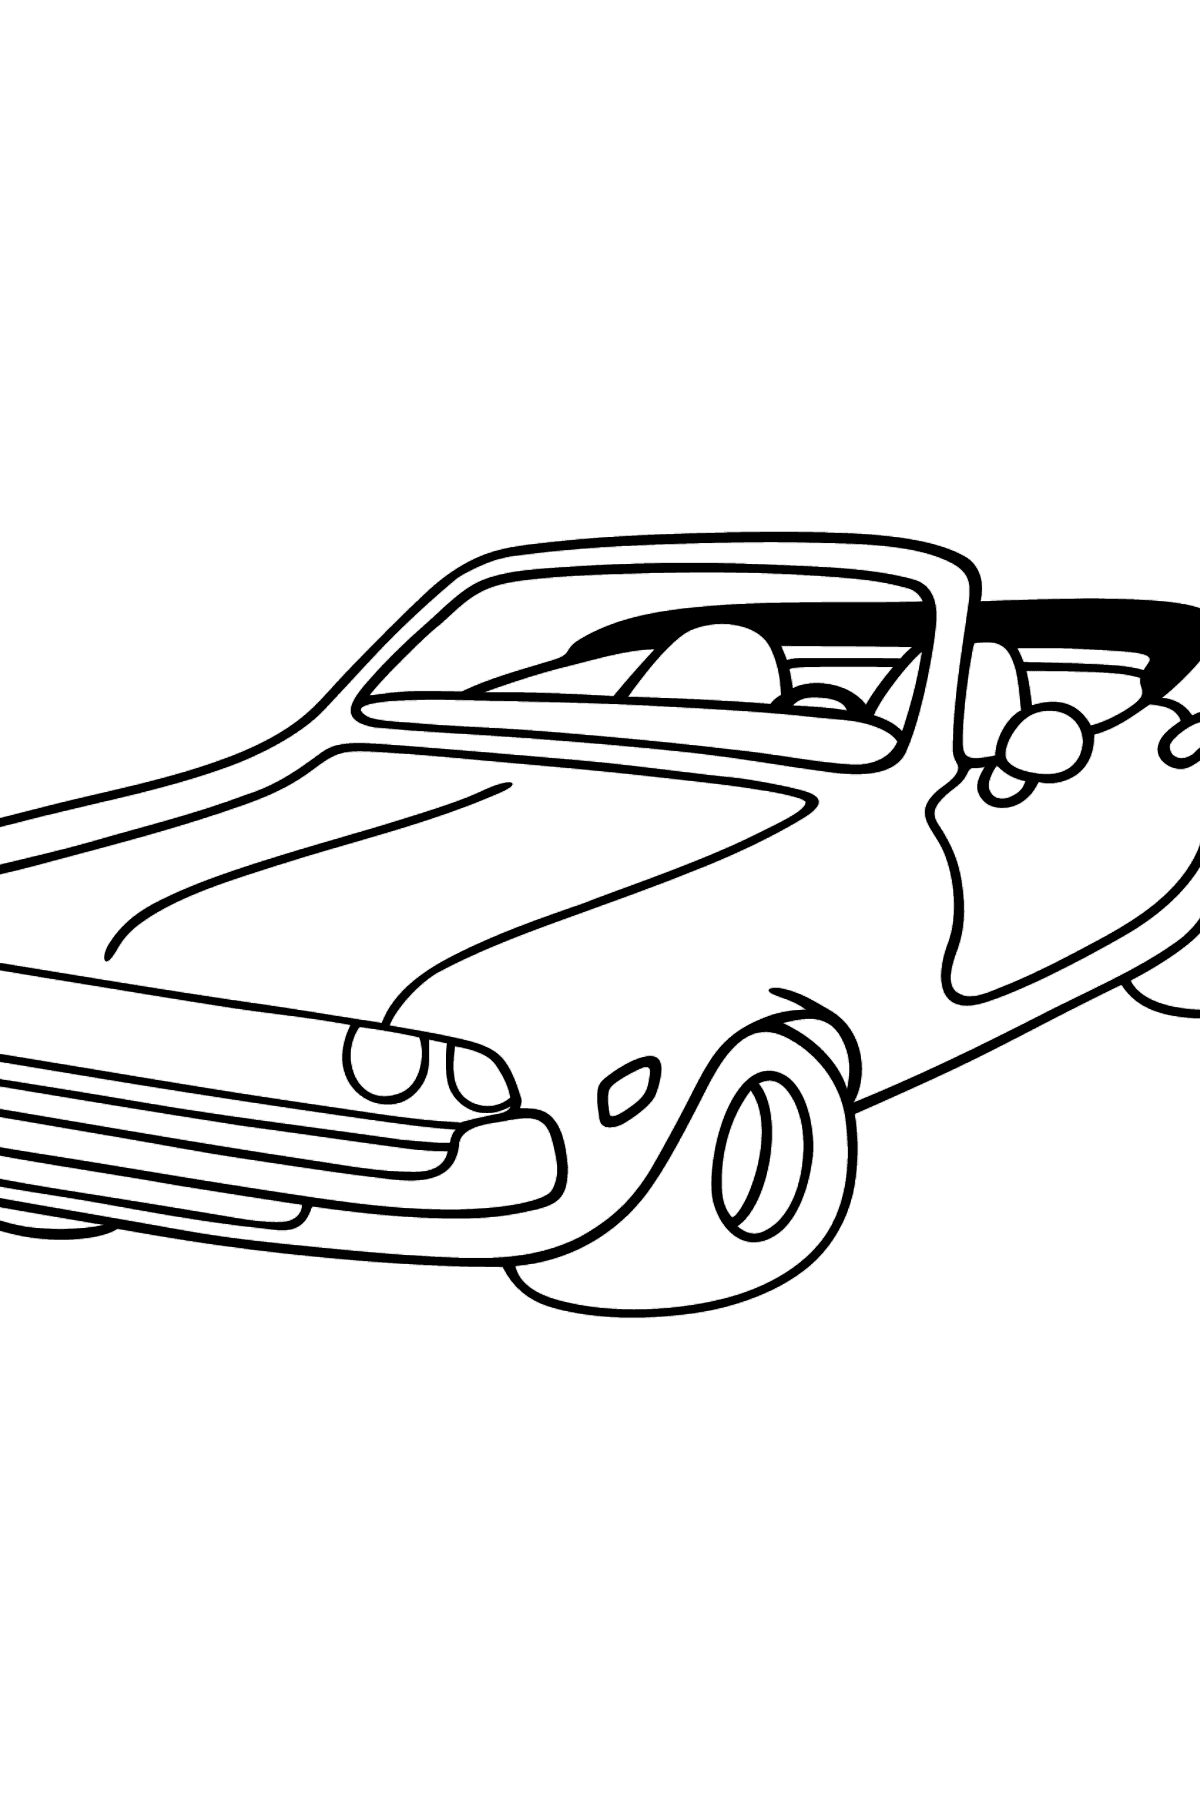 Open Top Cars coloring page - Coloring Pages for Kids